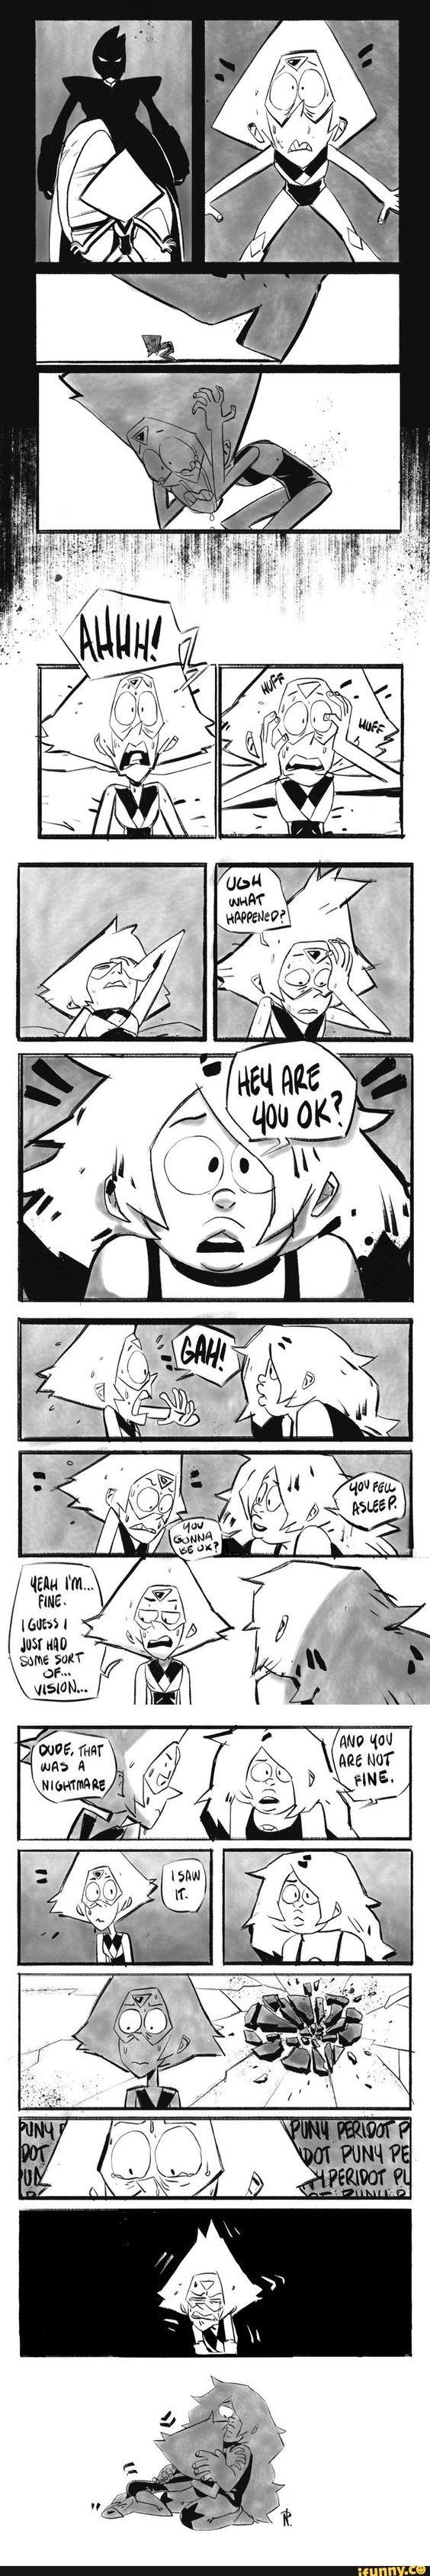 Steven Universe, Peridots Bad Dream